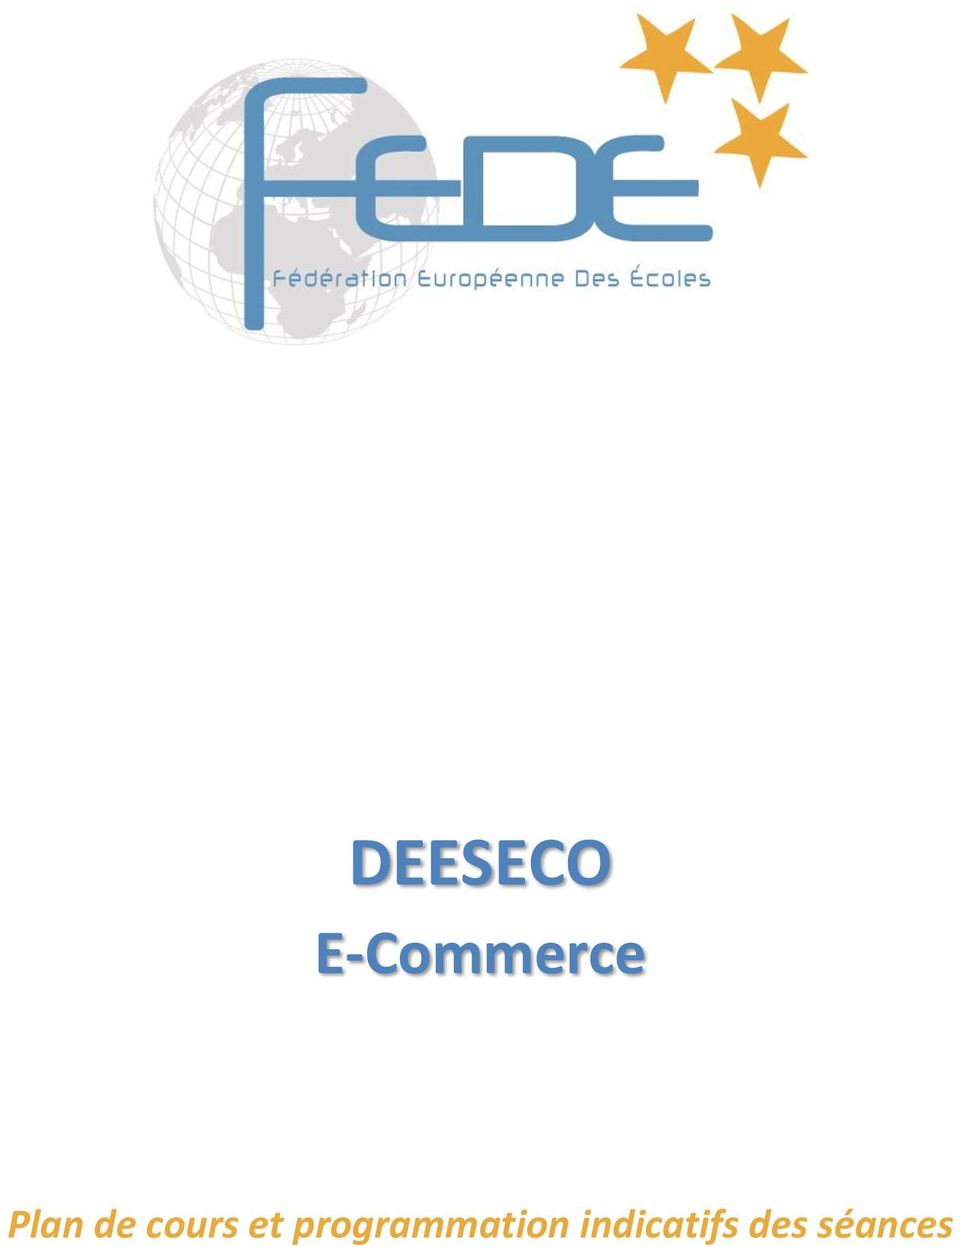 2013 FEDUCA SA DEESCOM Communication